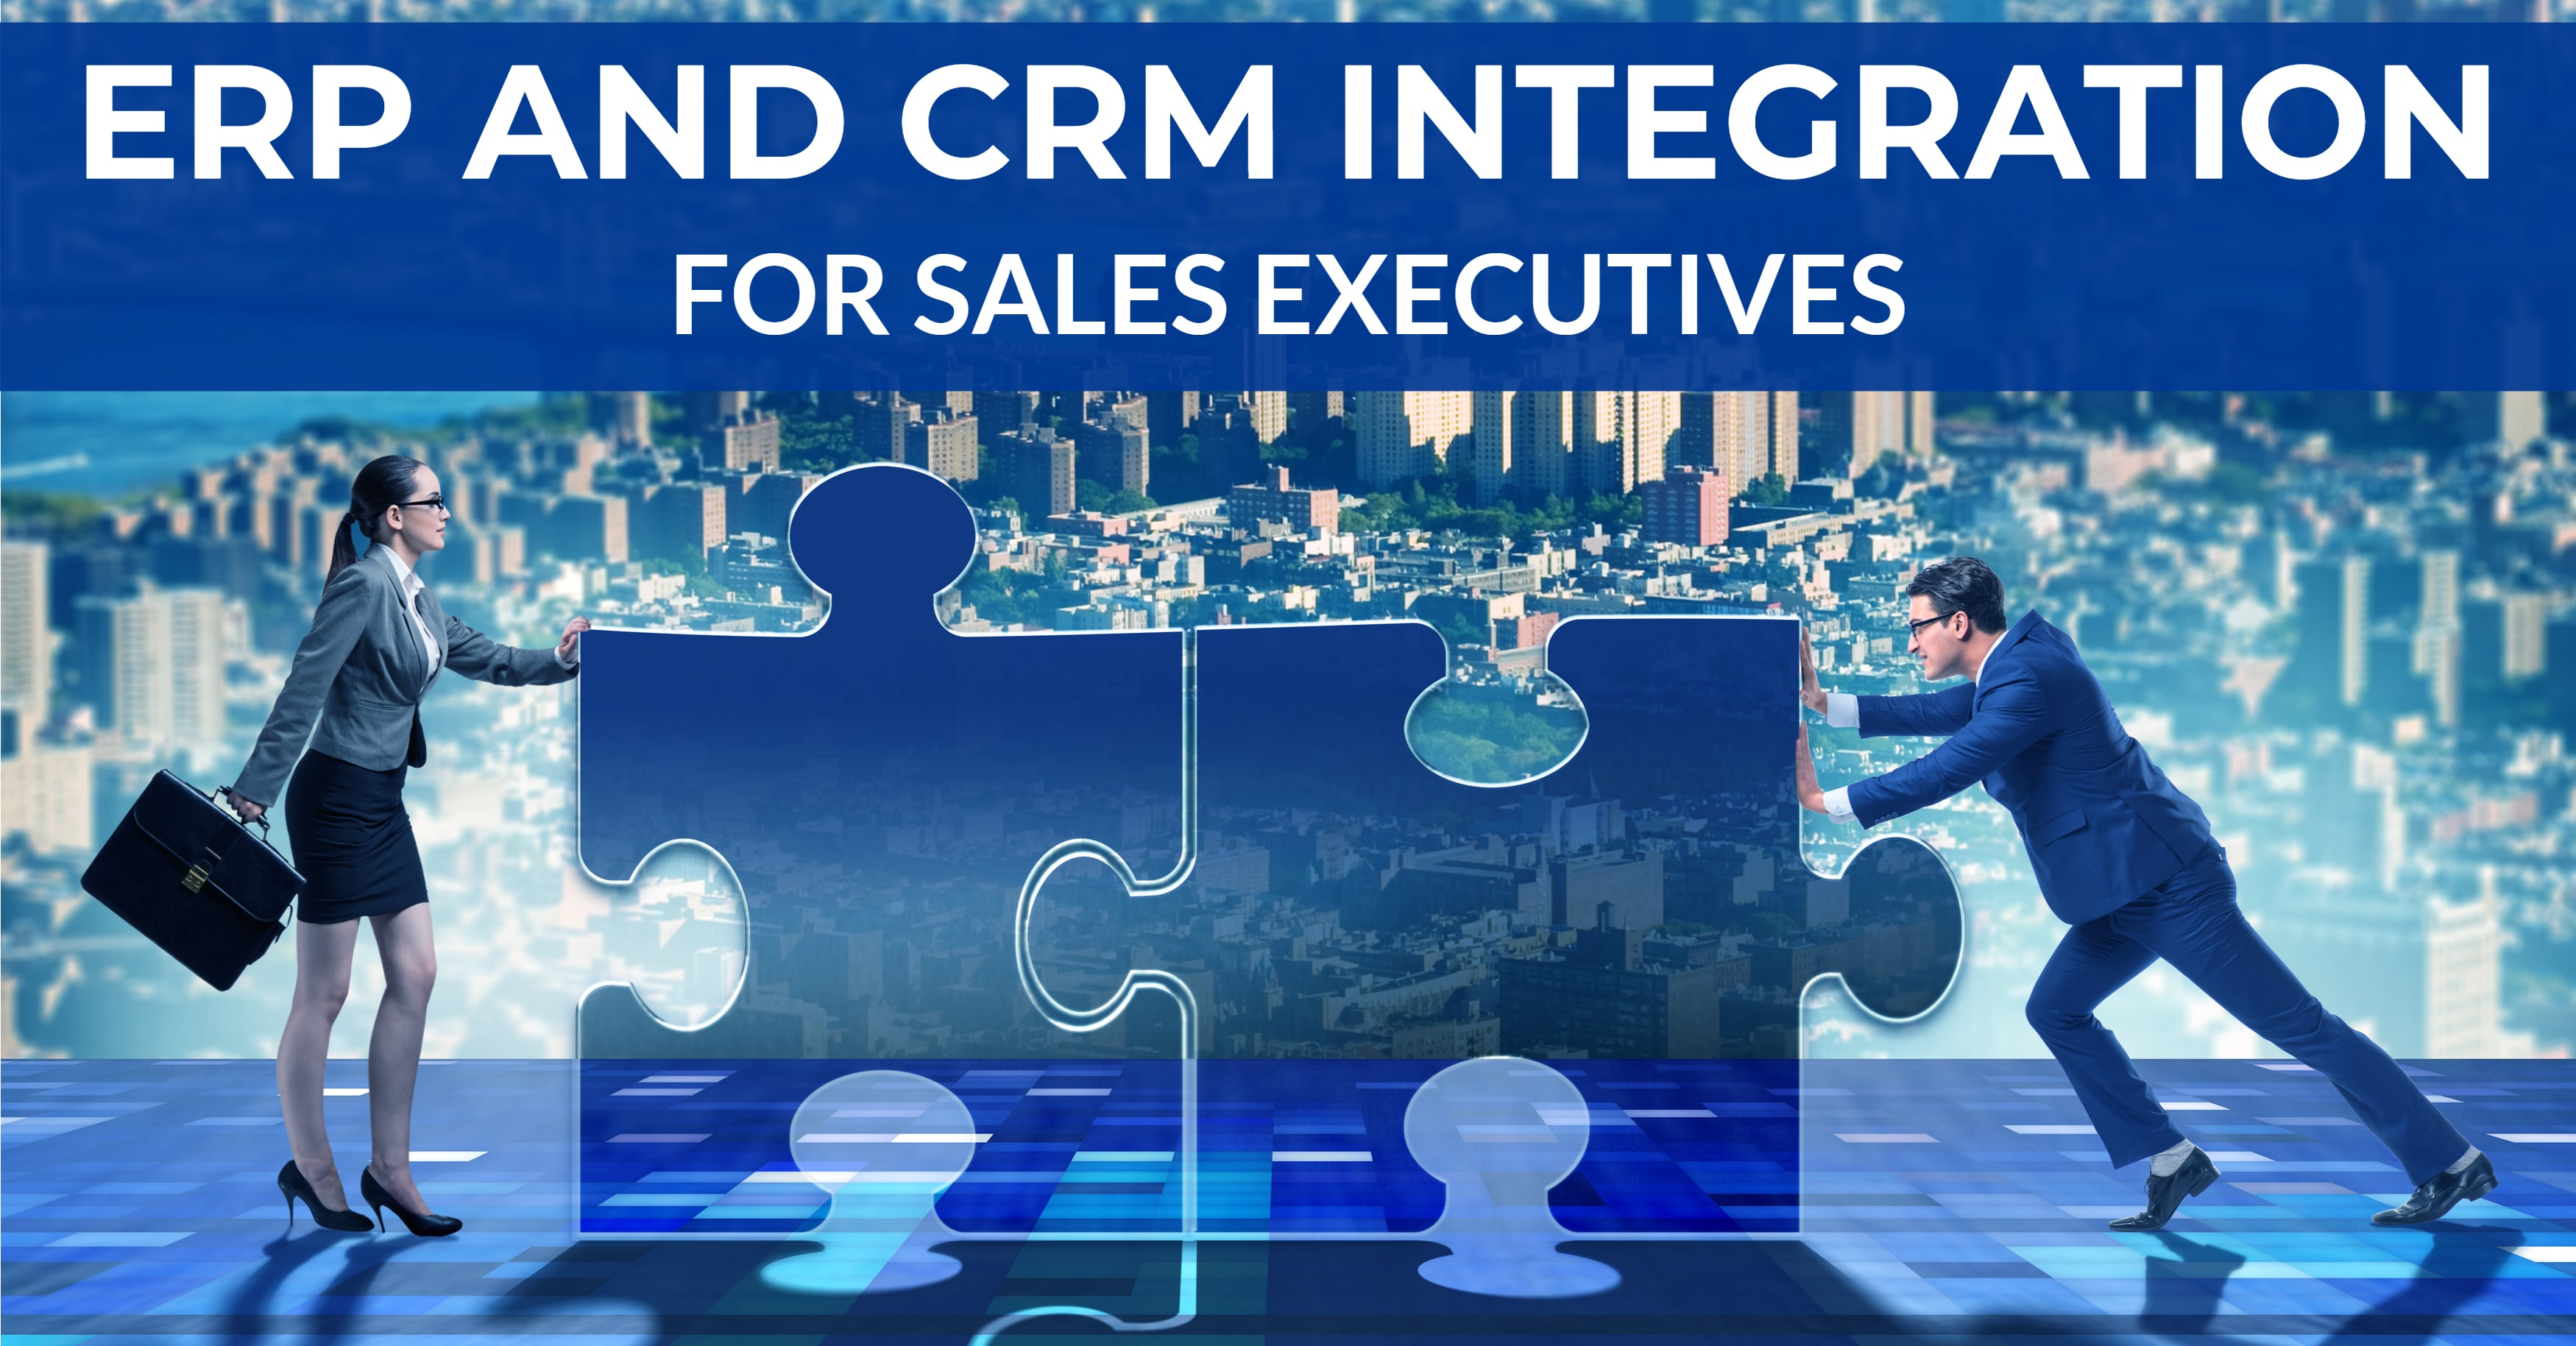 Why Sales Executives Need ERP and CRM Integration